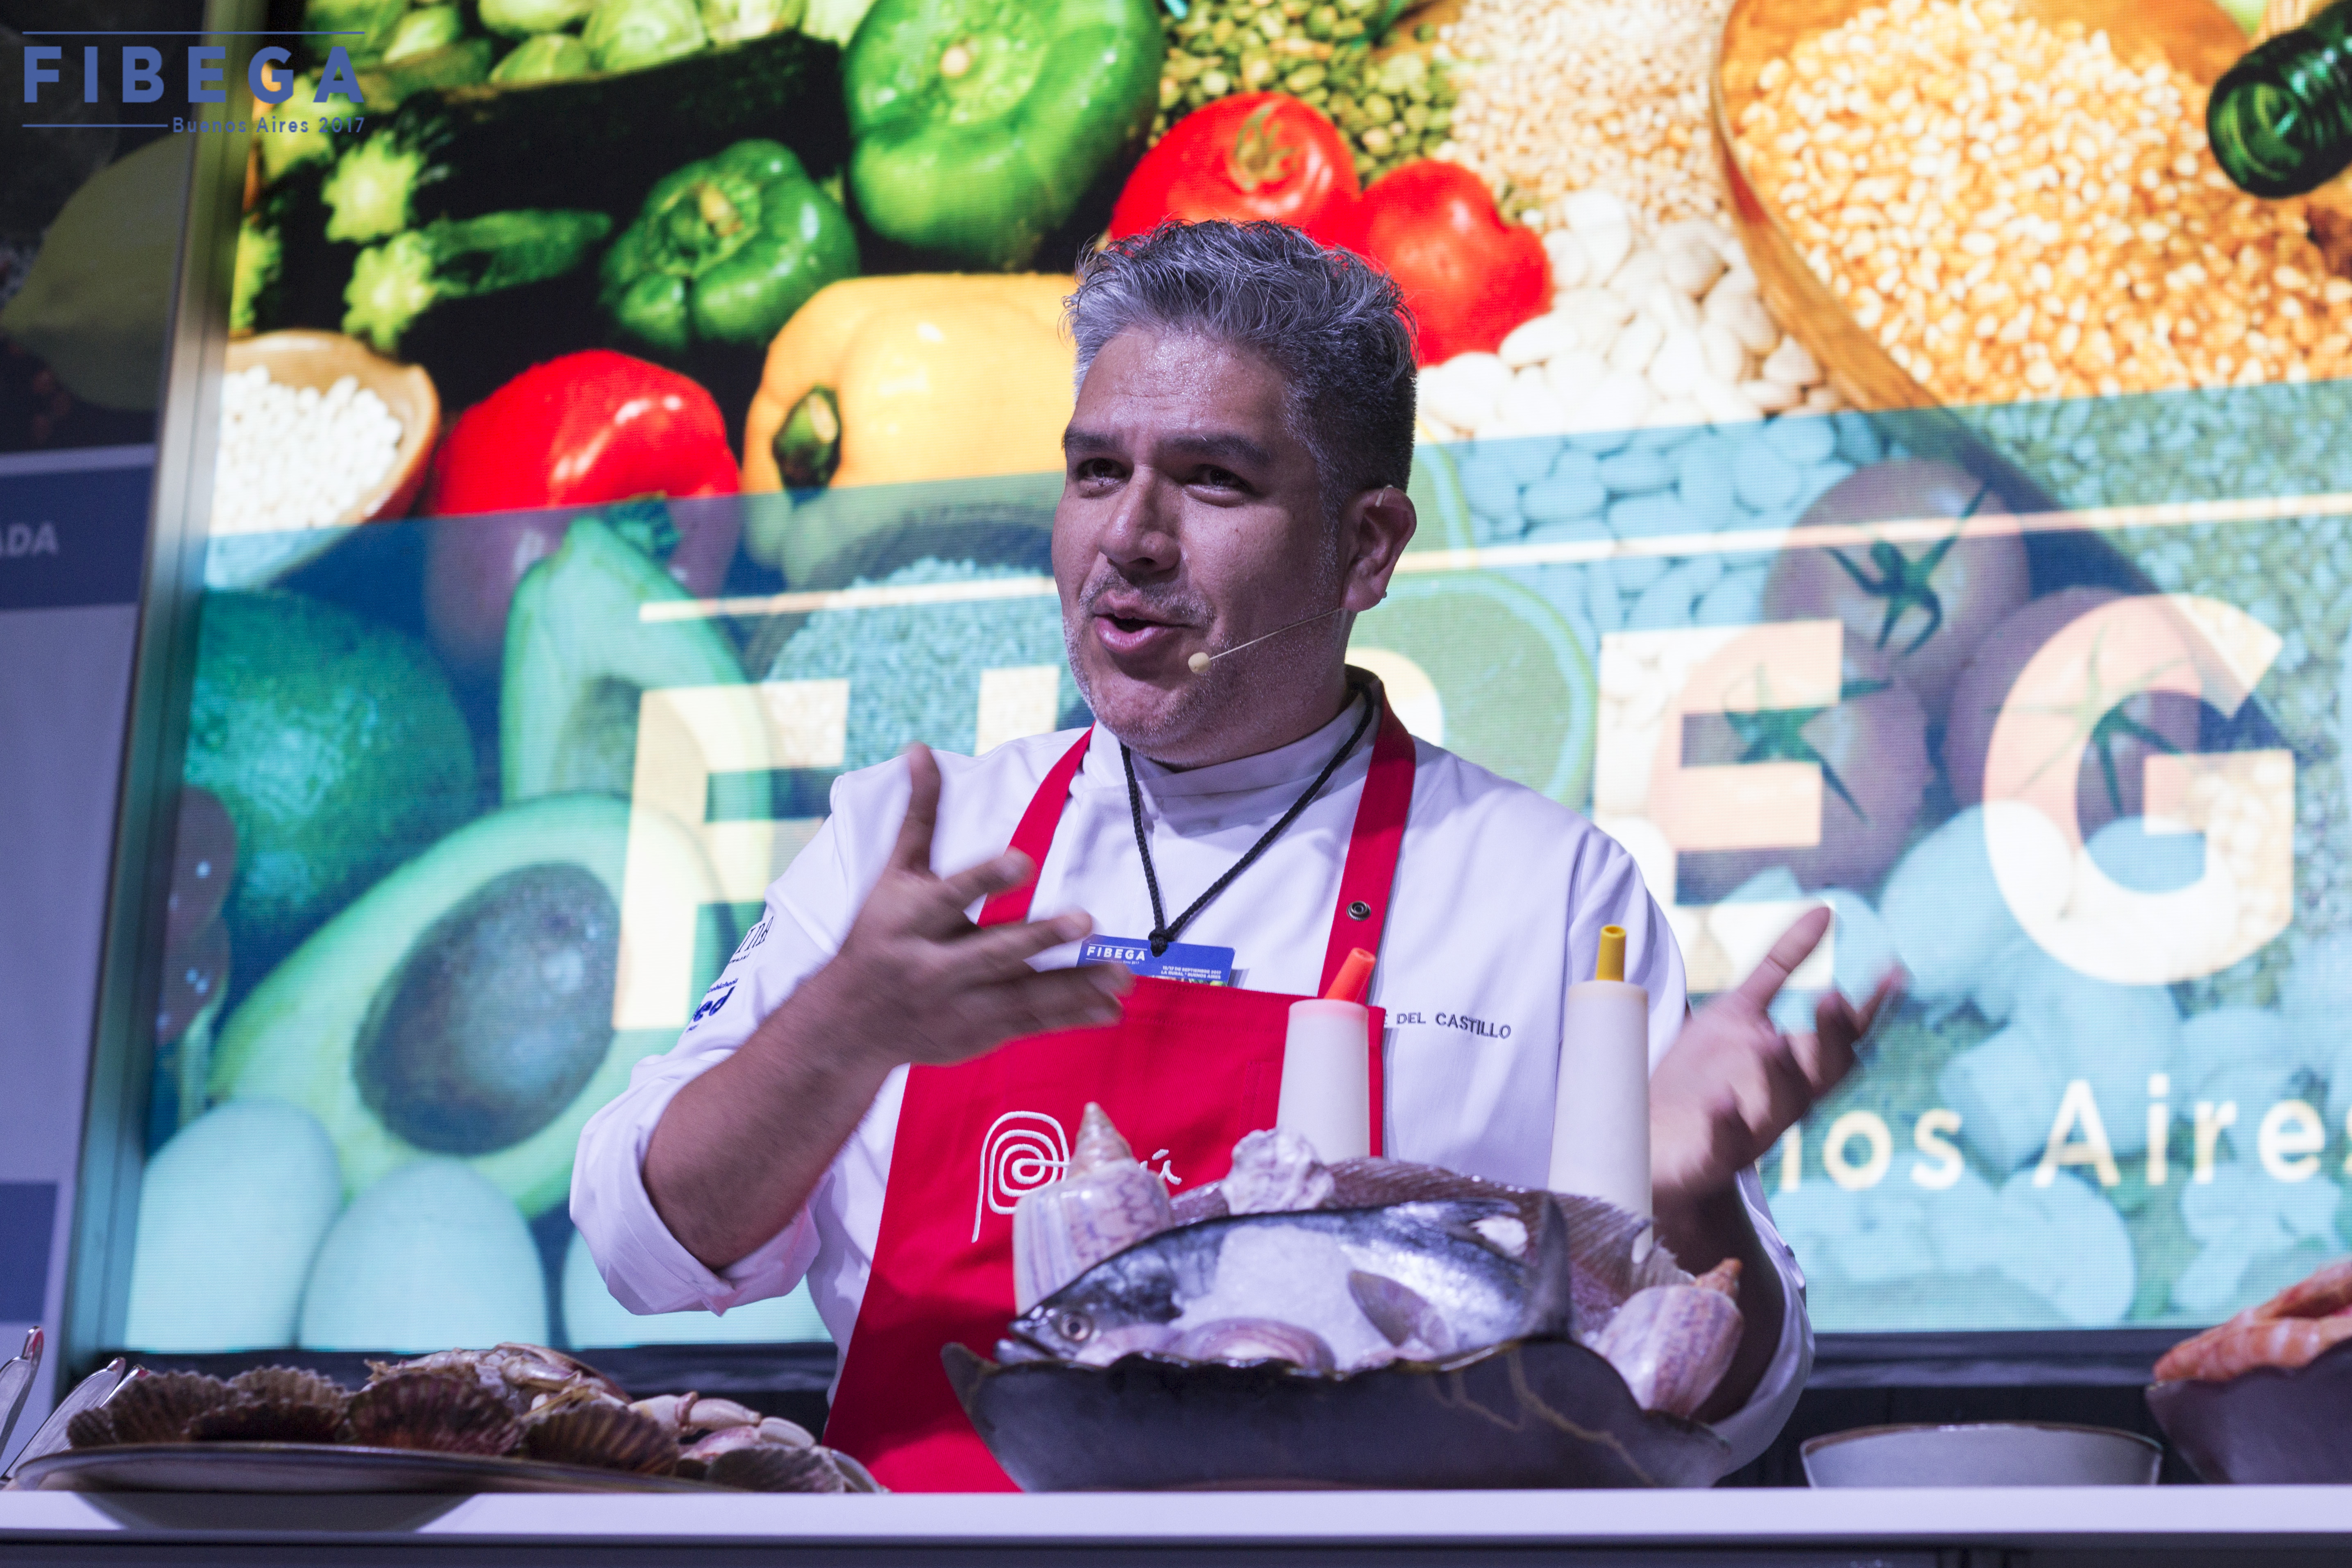 FIBEGA, THE PREMIER WORLDWIDE GASTRONOMY TOURISM FAIR,  COMES TO MIAMI MAY 2019